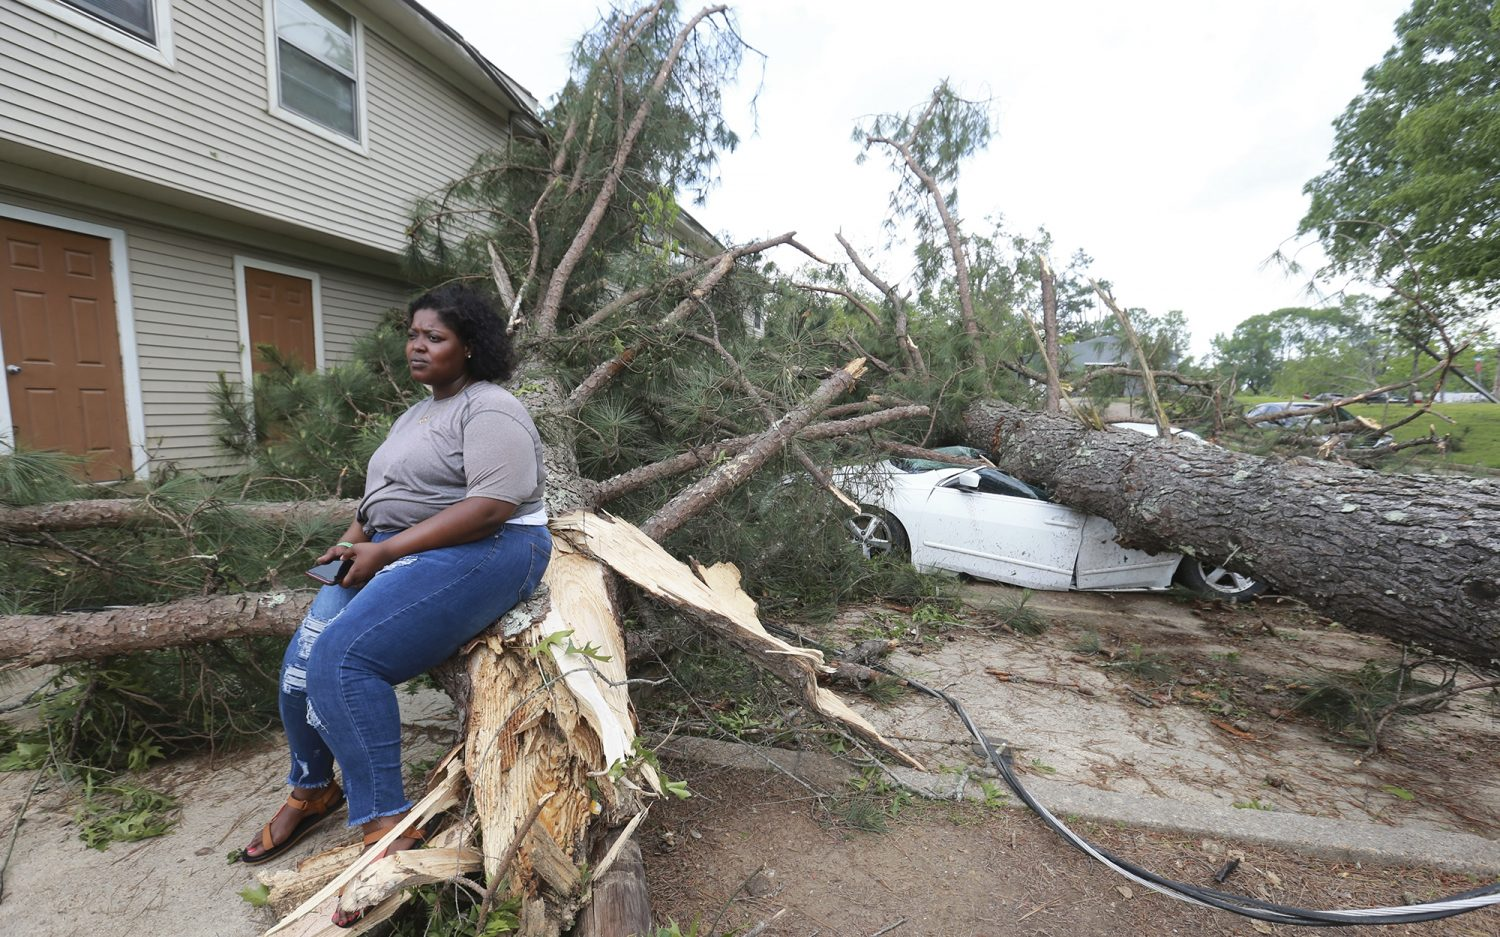 Severe storms hit the South